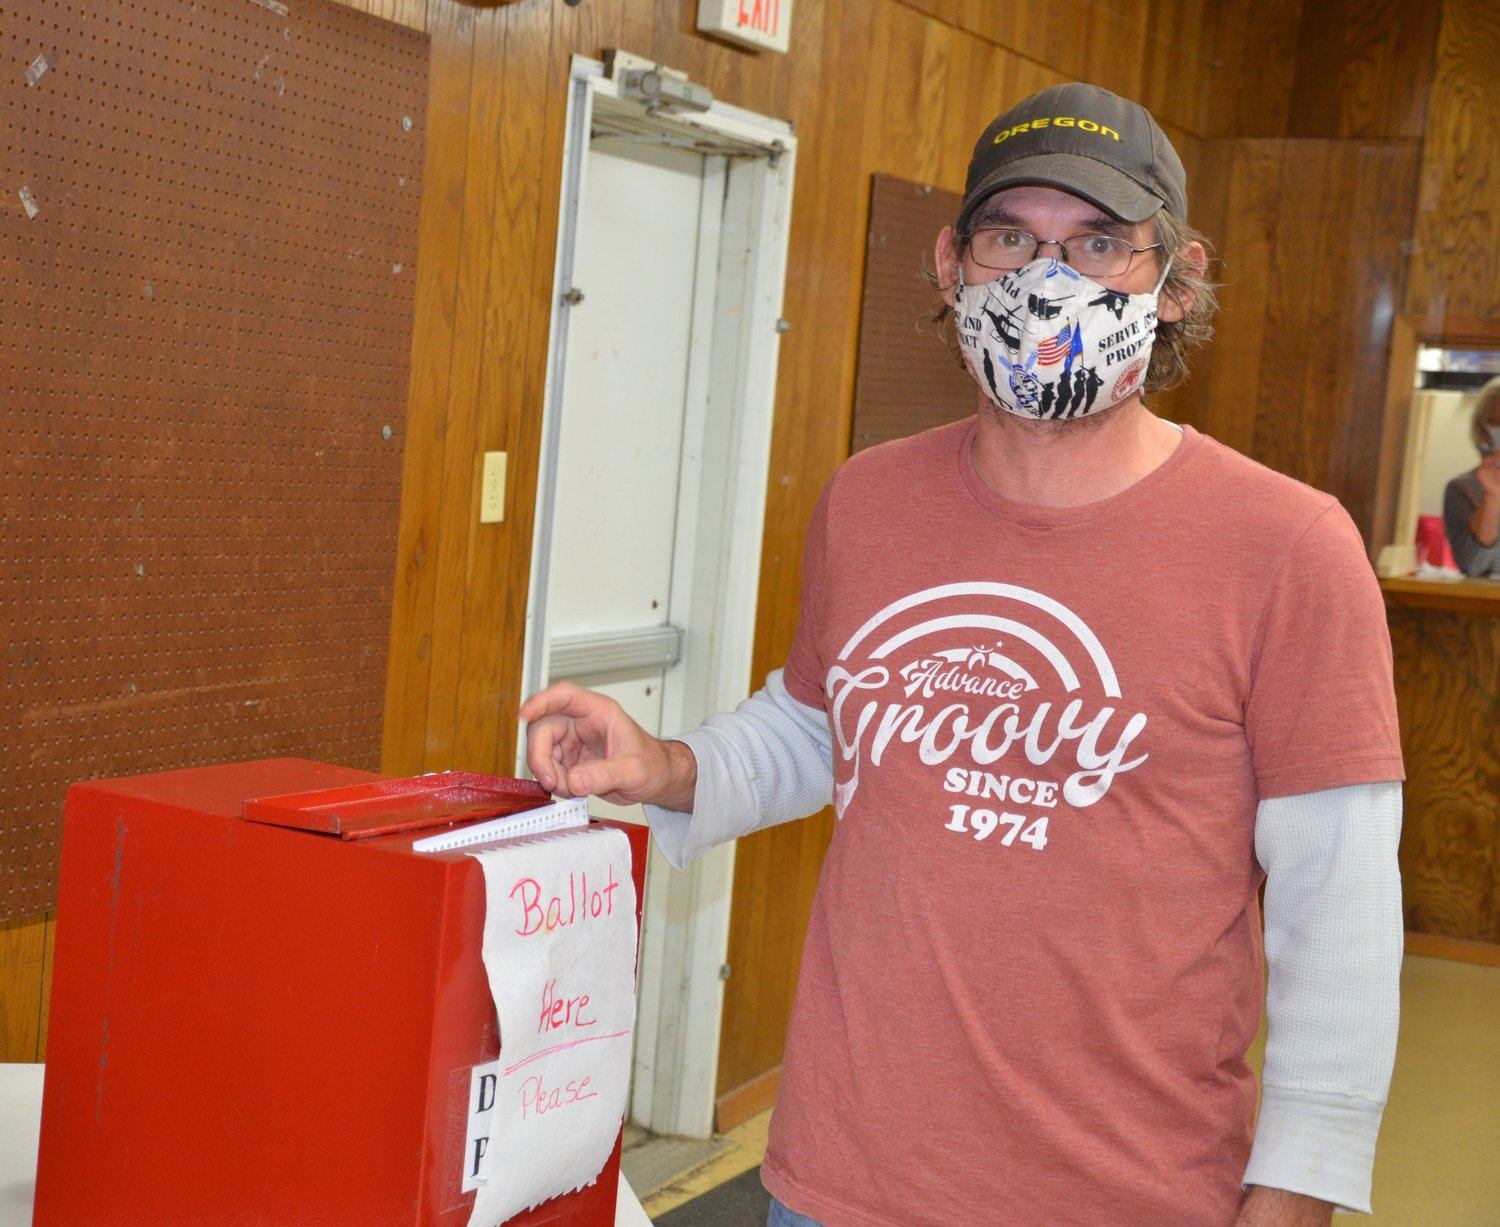 Anthony Henderson casts his ballot Tuesday at the  4-H building in De Smet.